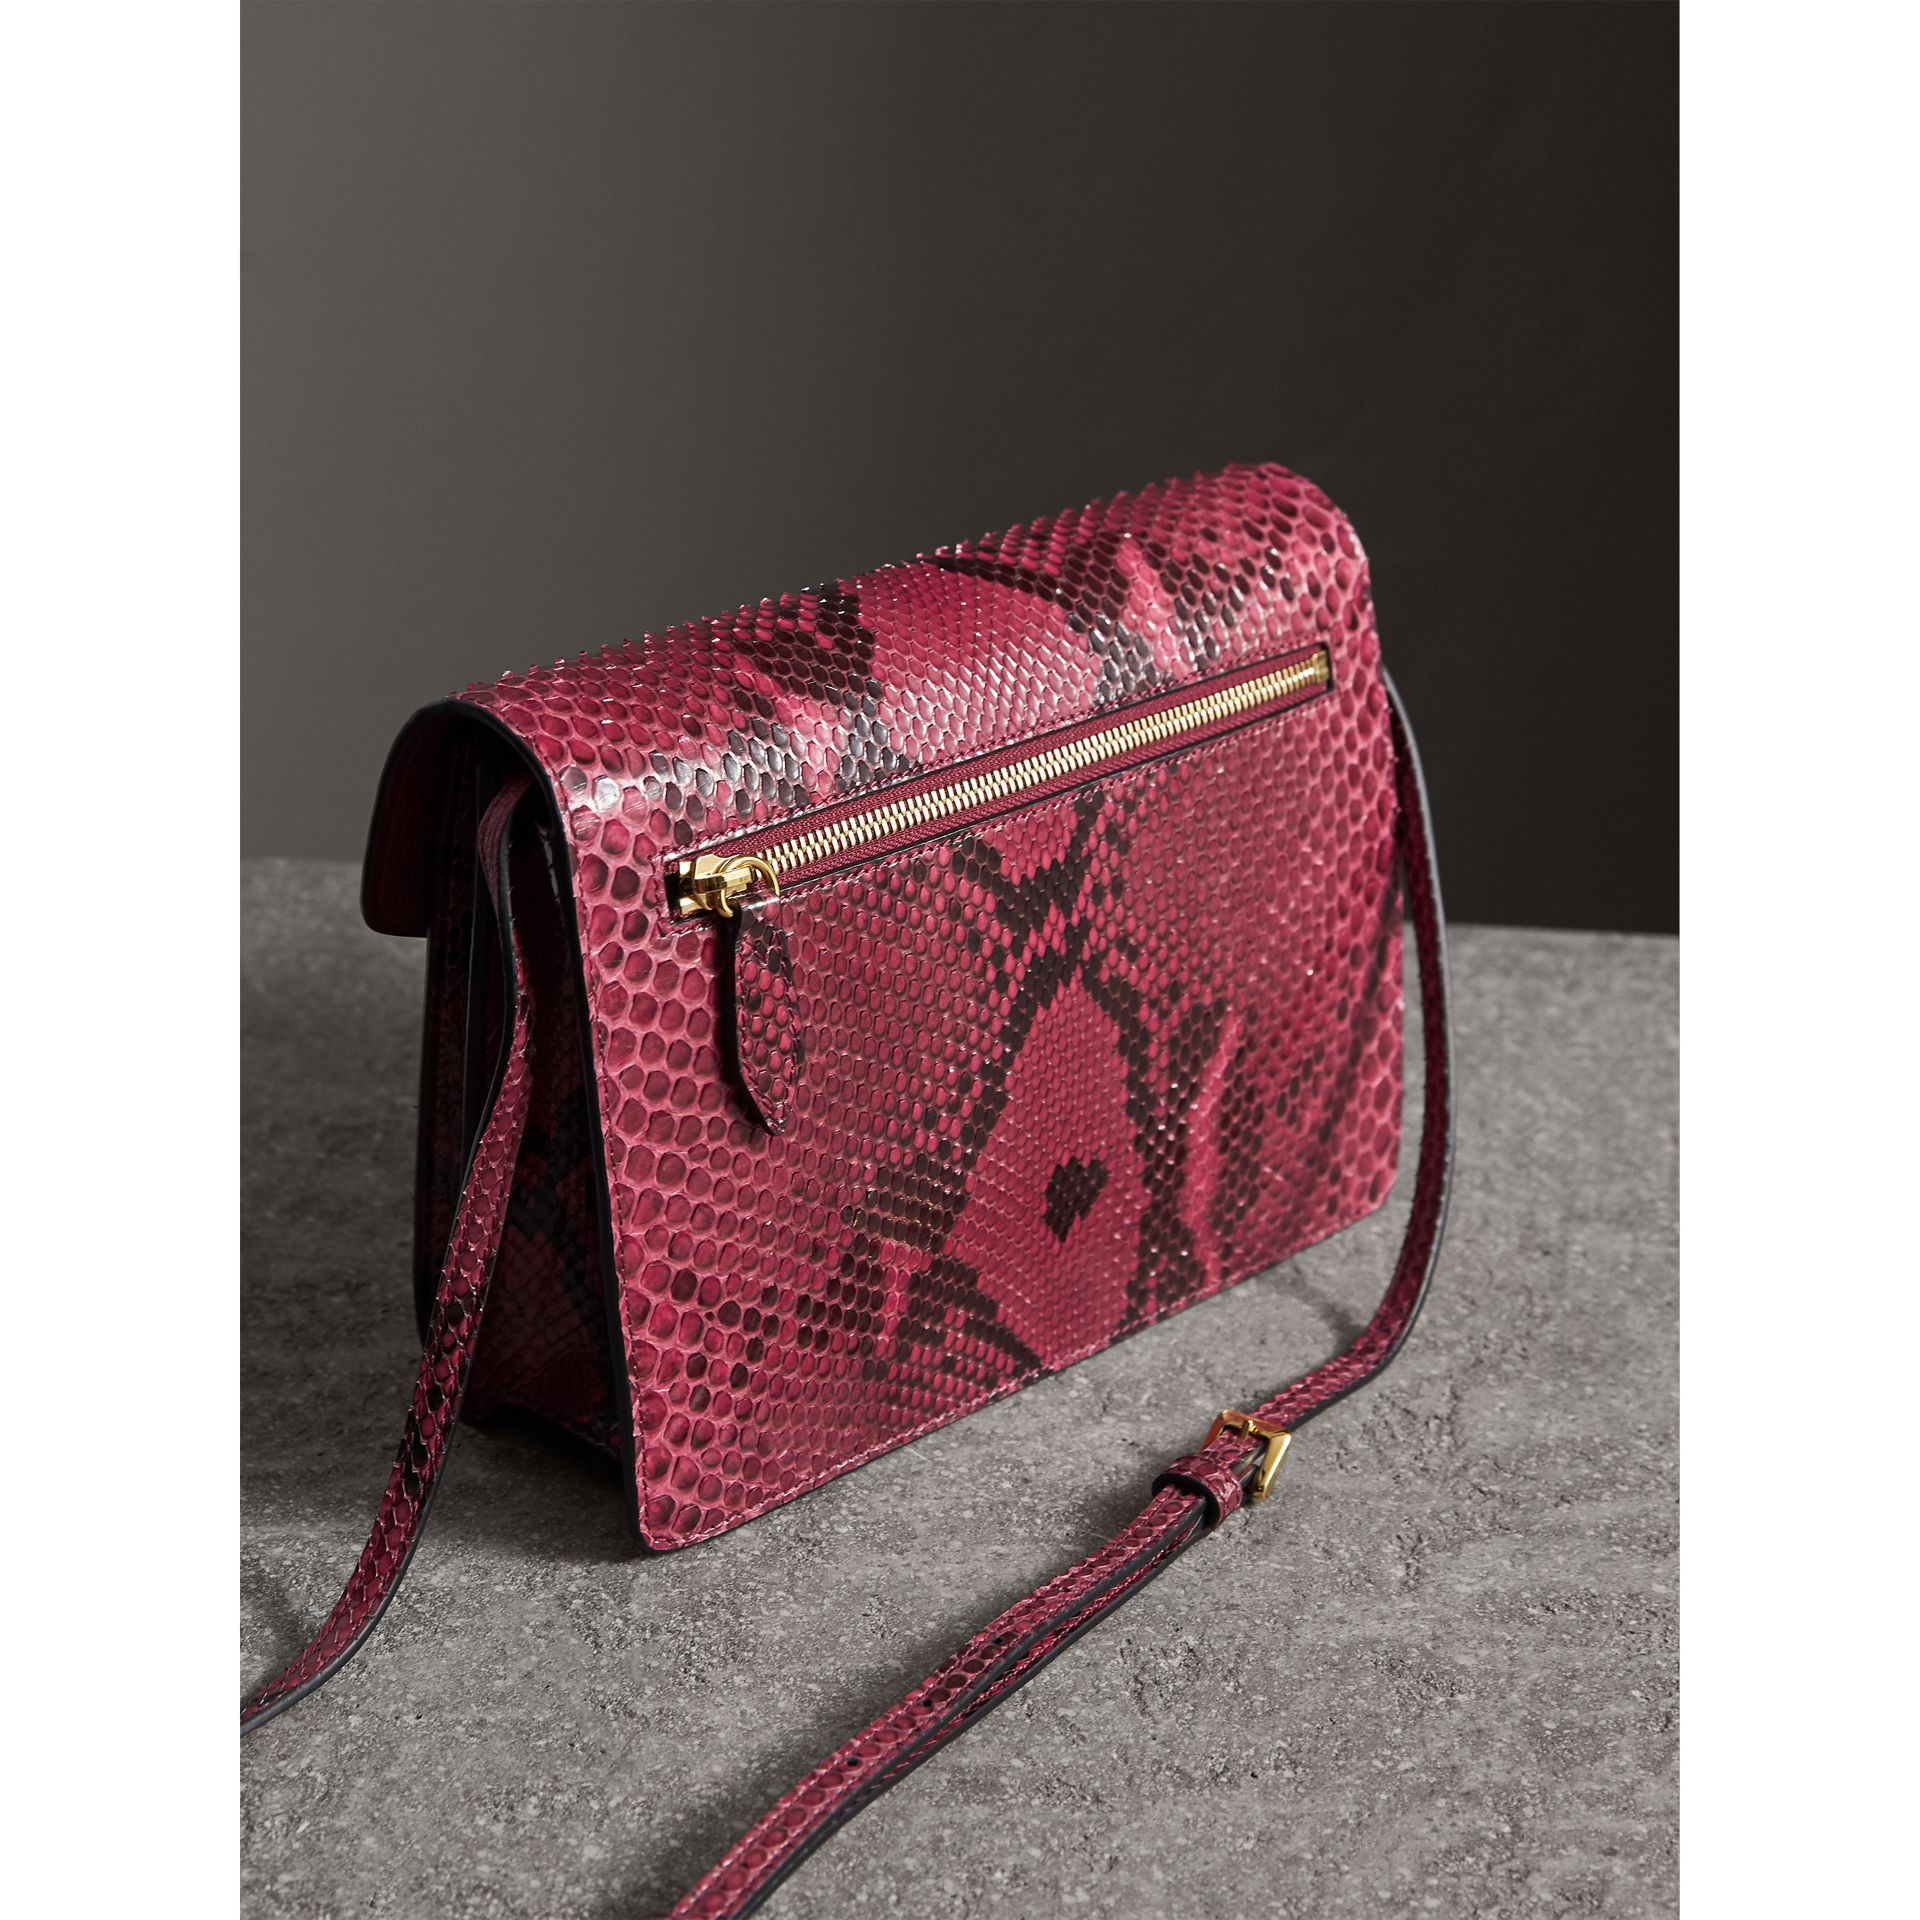 Small Python Crossbody Bag in Claret Pink - Women | Burberry - gallery image 4